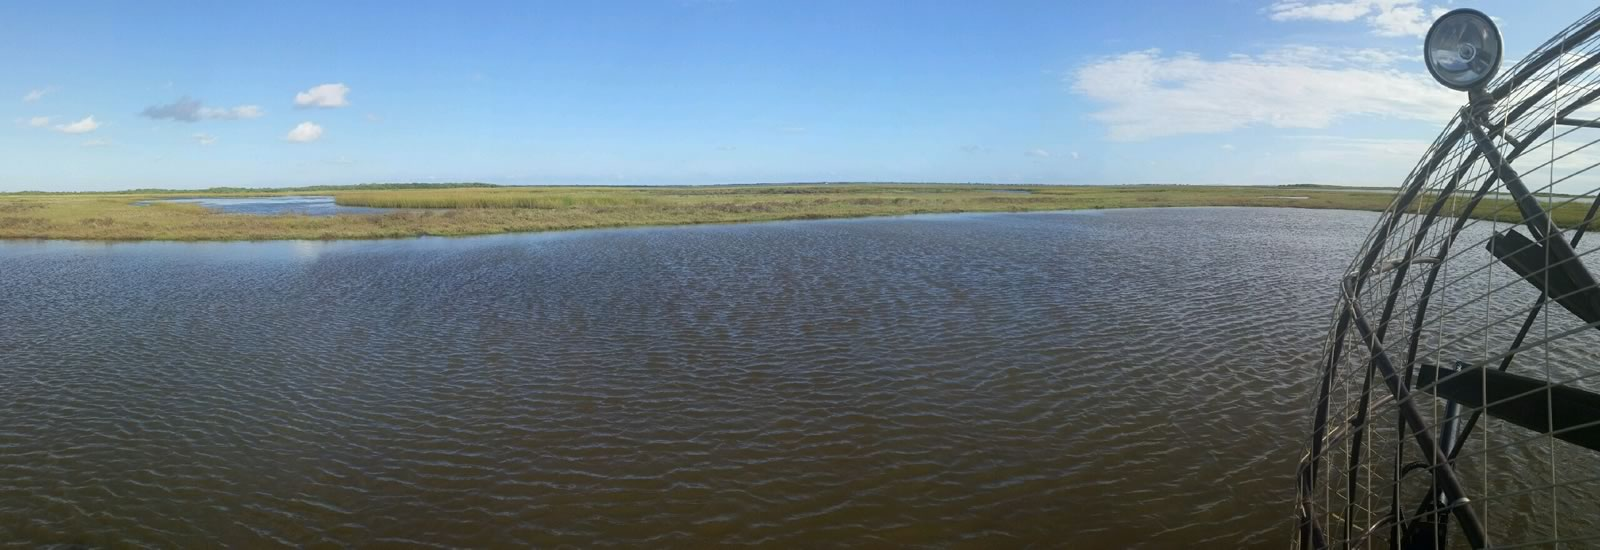 Airboat Tours & Fishing